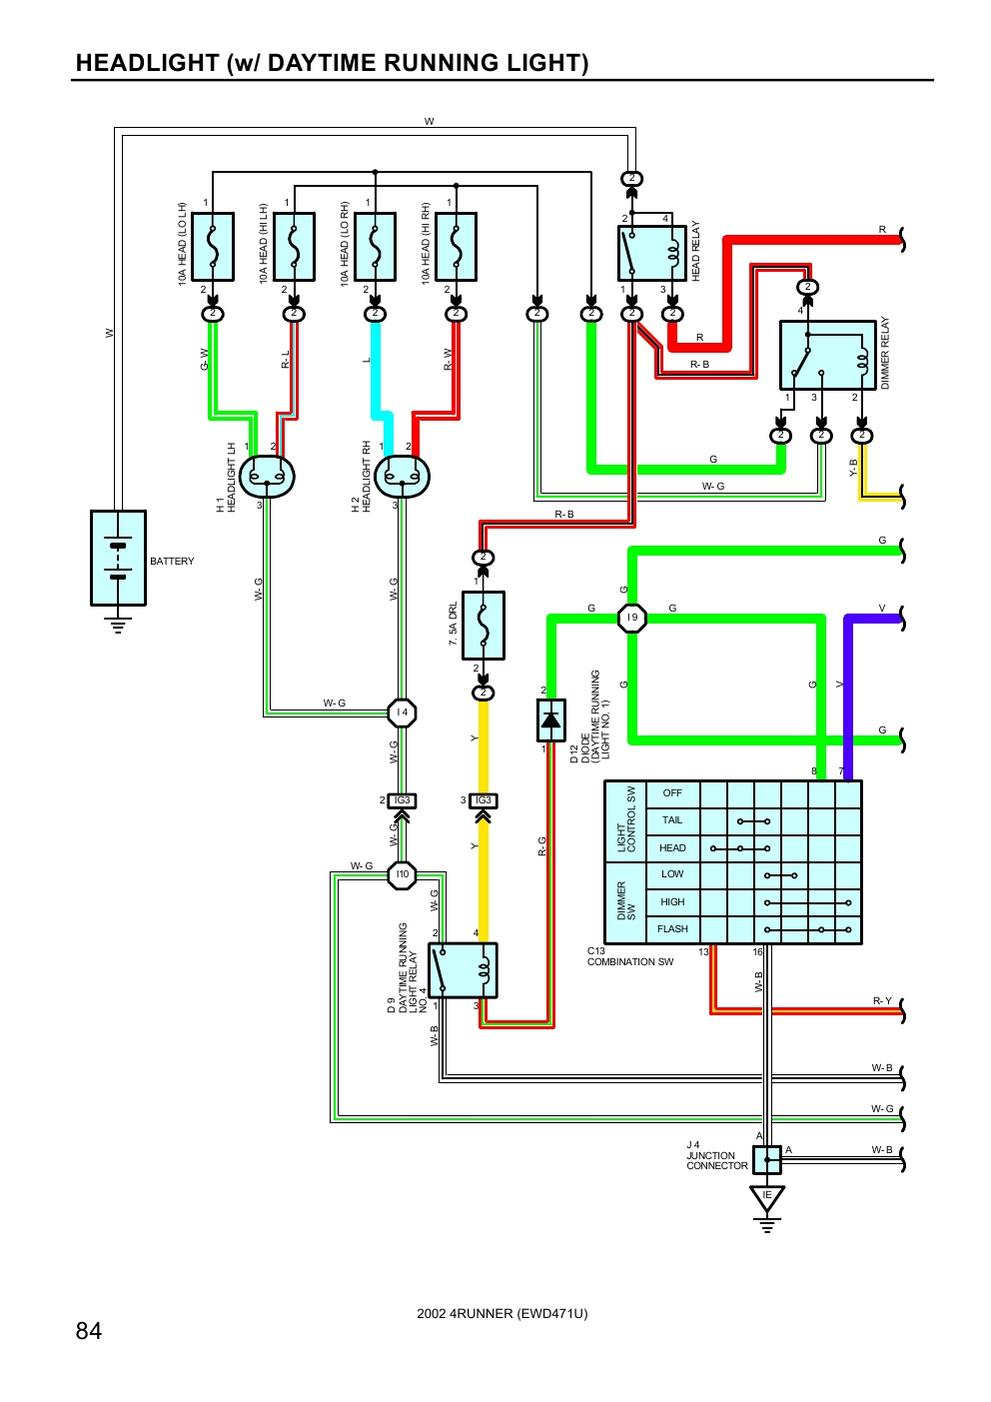 Headlight Wire Harness Diagram Another Blog About Wiring Headlamp For Freightliner Weird Issue Help Toyota 4runner Forum